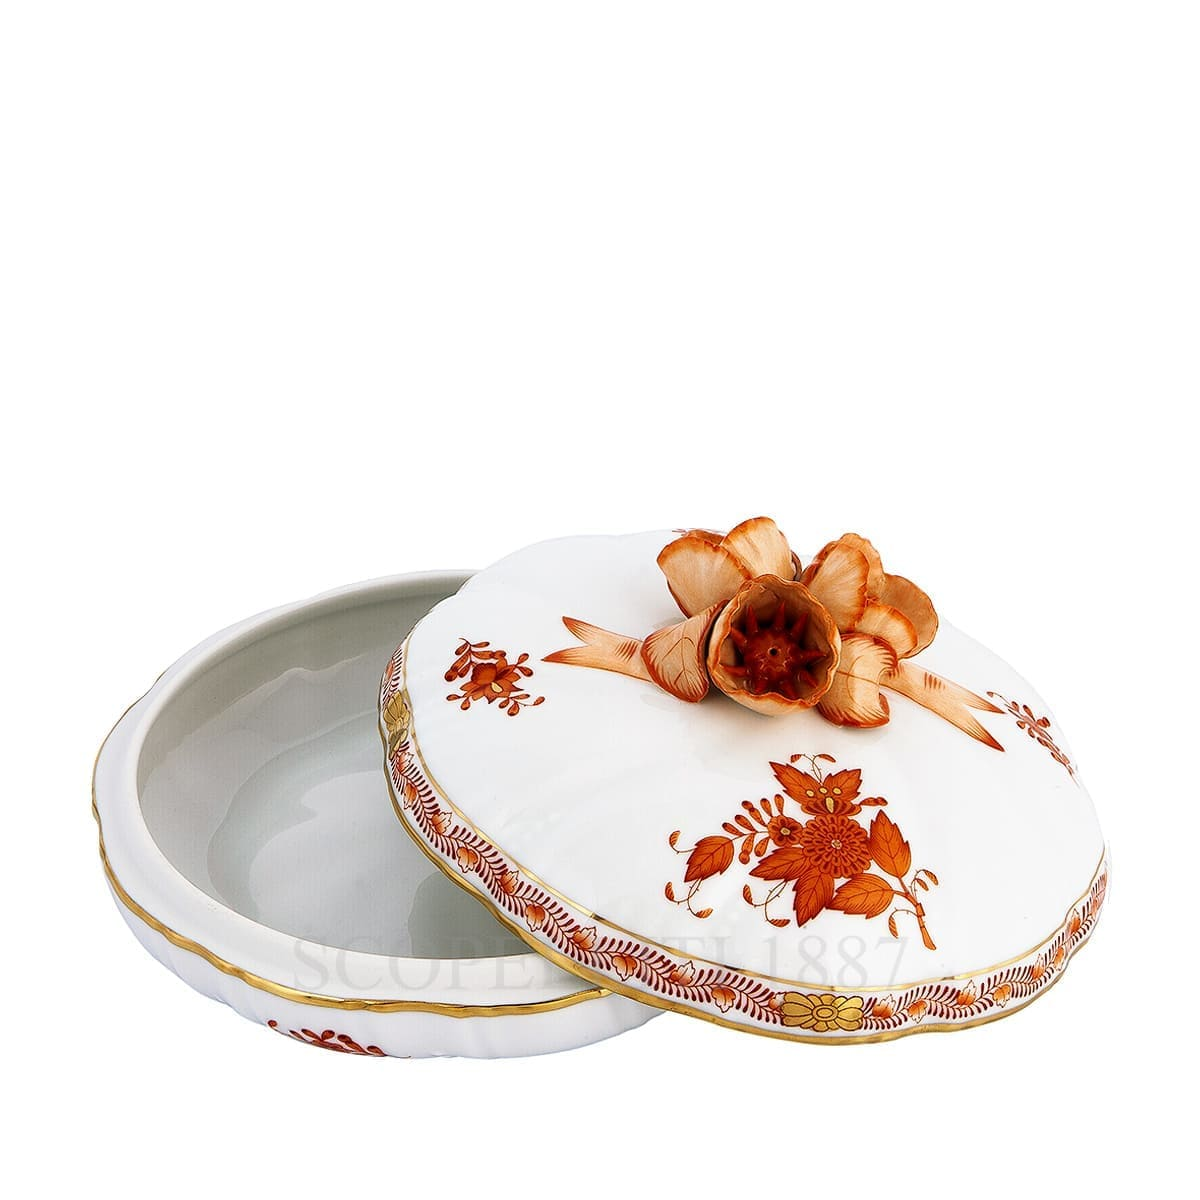 herend porcelain apponyi candy box orange with rose